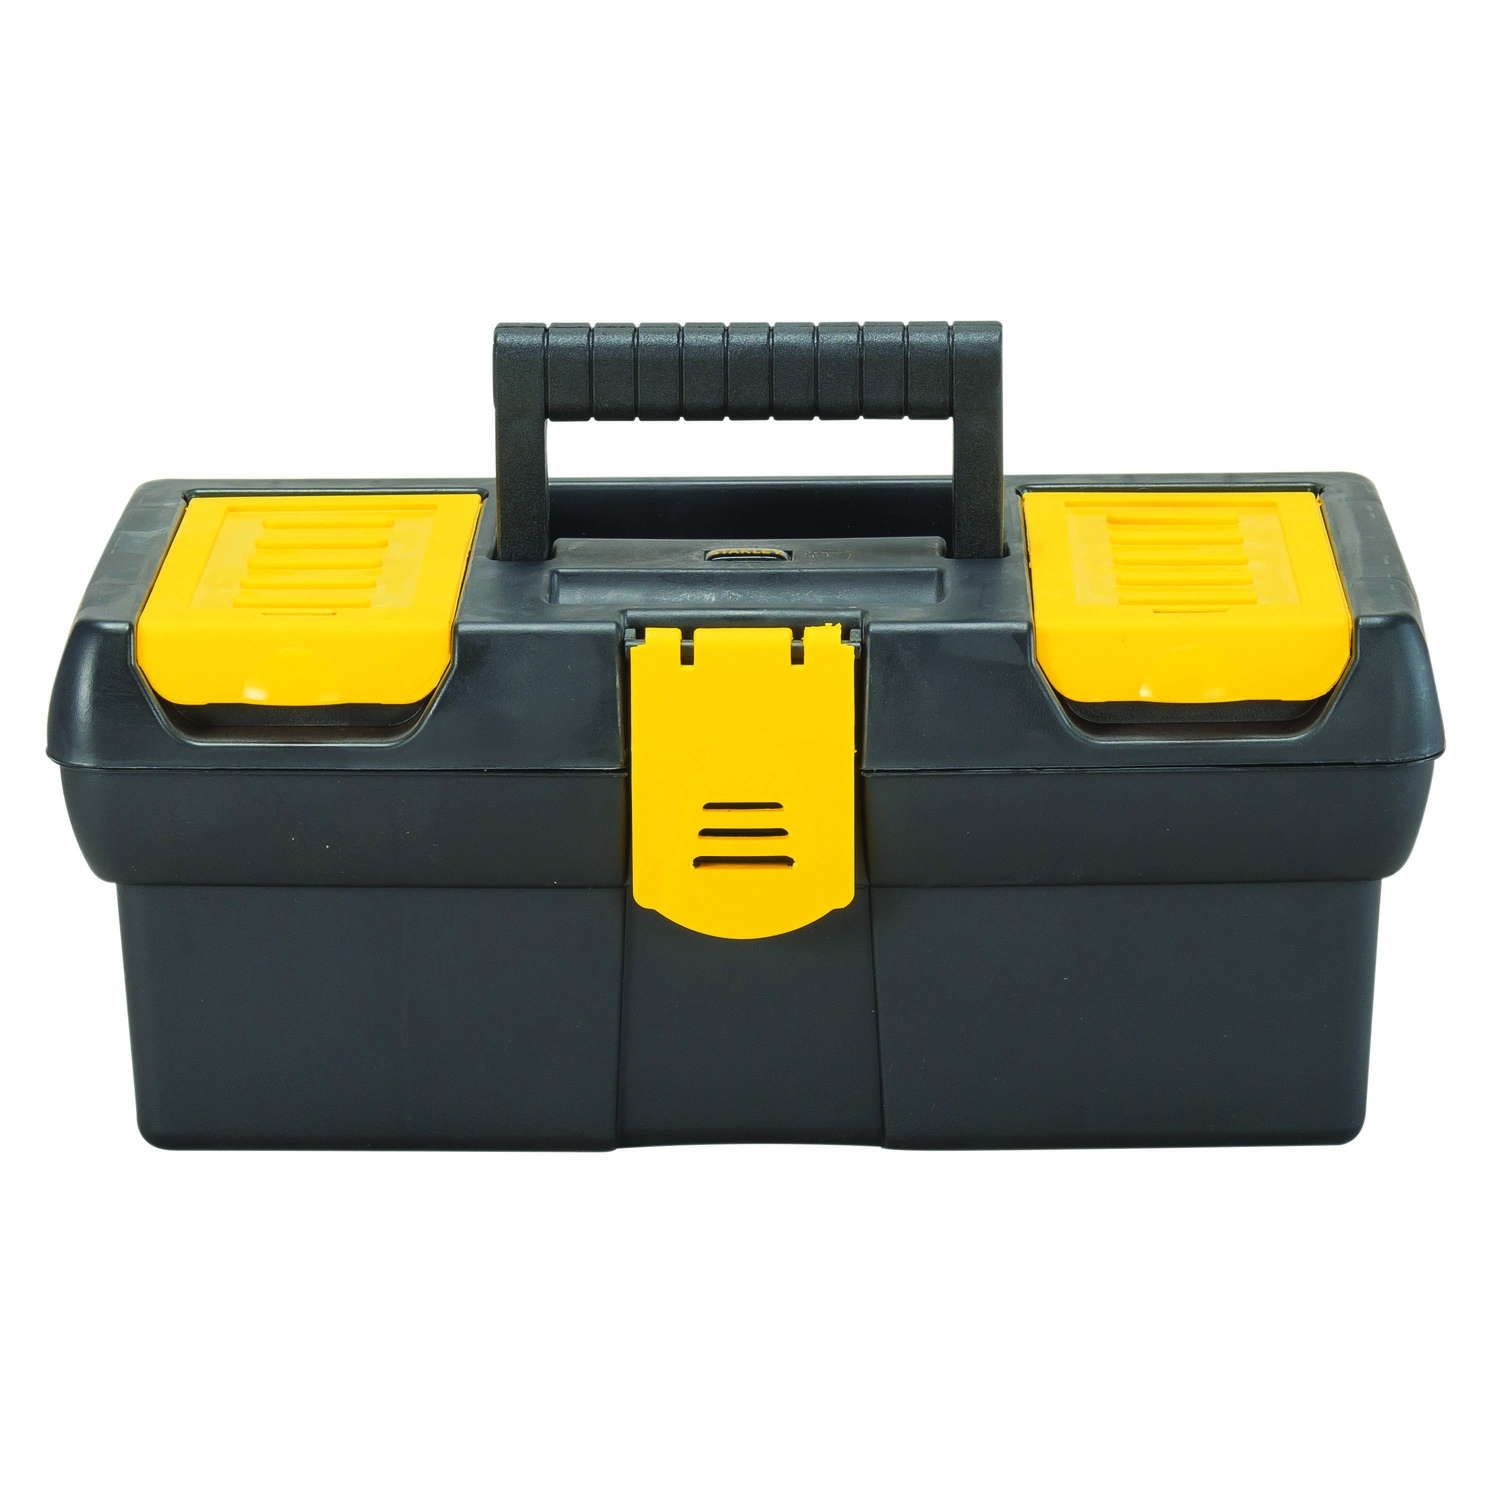 Stanley 12.5 in. Polypropylene Tool Box 7 in. W x 5.1 in. H Black/Yellow